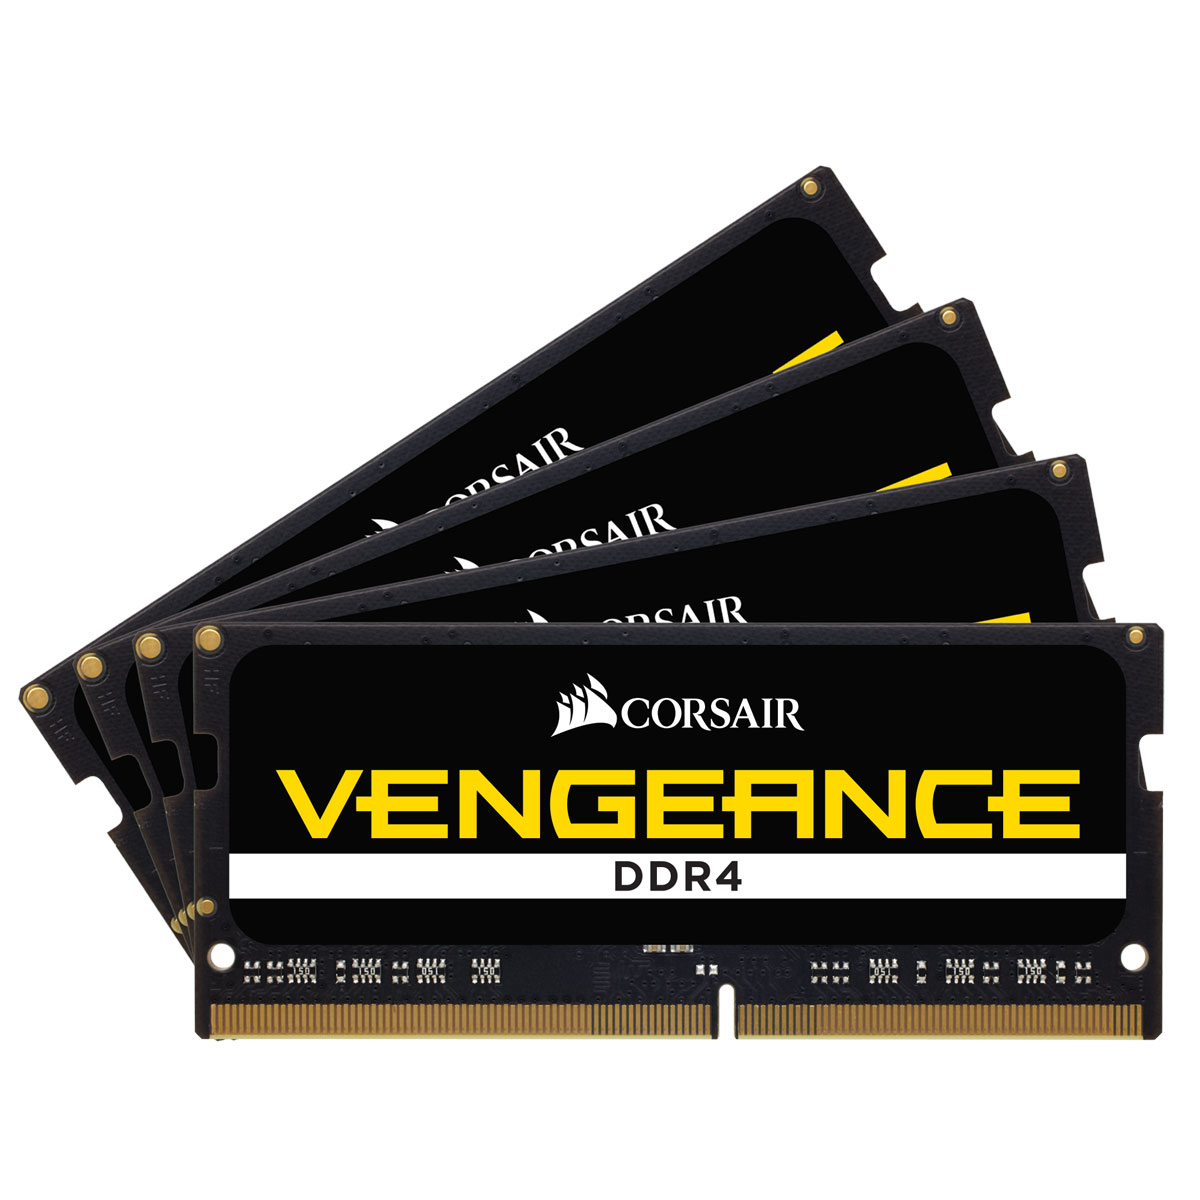 Mémoire PC Corsair Vengeance SO-DIMM DDR4 32 Go (4 x 8 Go) 3800 MHz CL18 Kit Quad Channel RAM DDR4 PC4-30400 - CMSX32GX4M4X3800C18 (garantie 10 ans par Corsair)